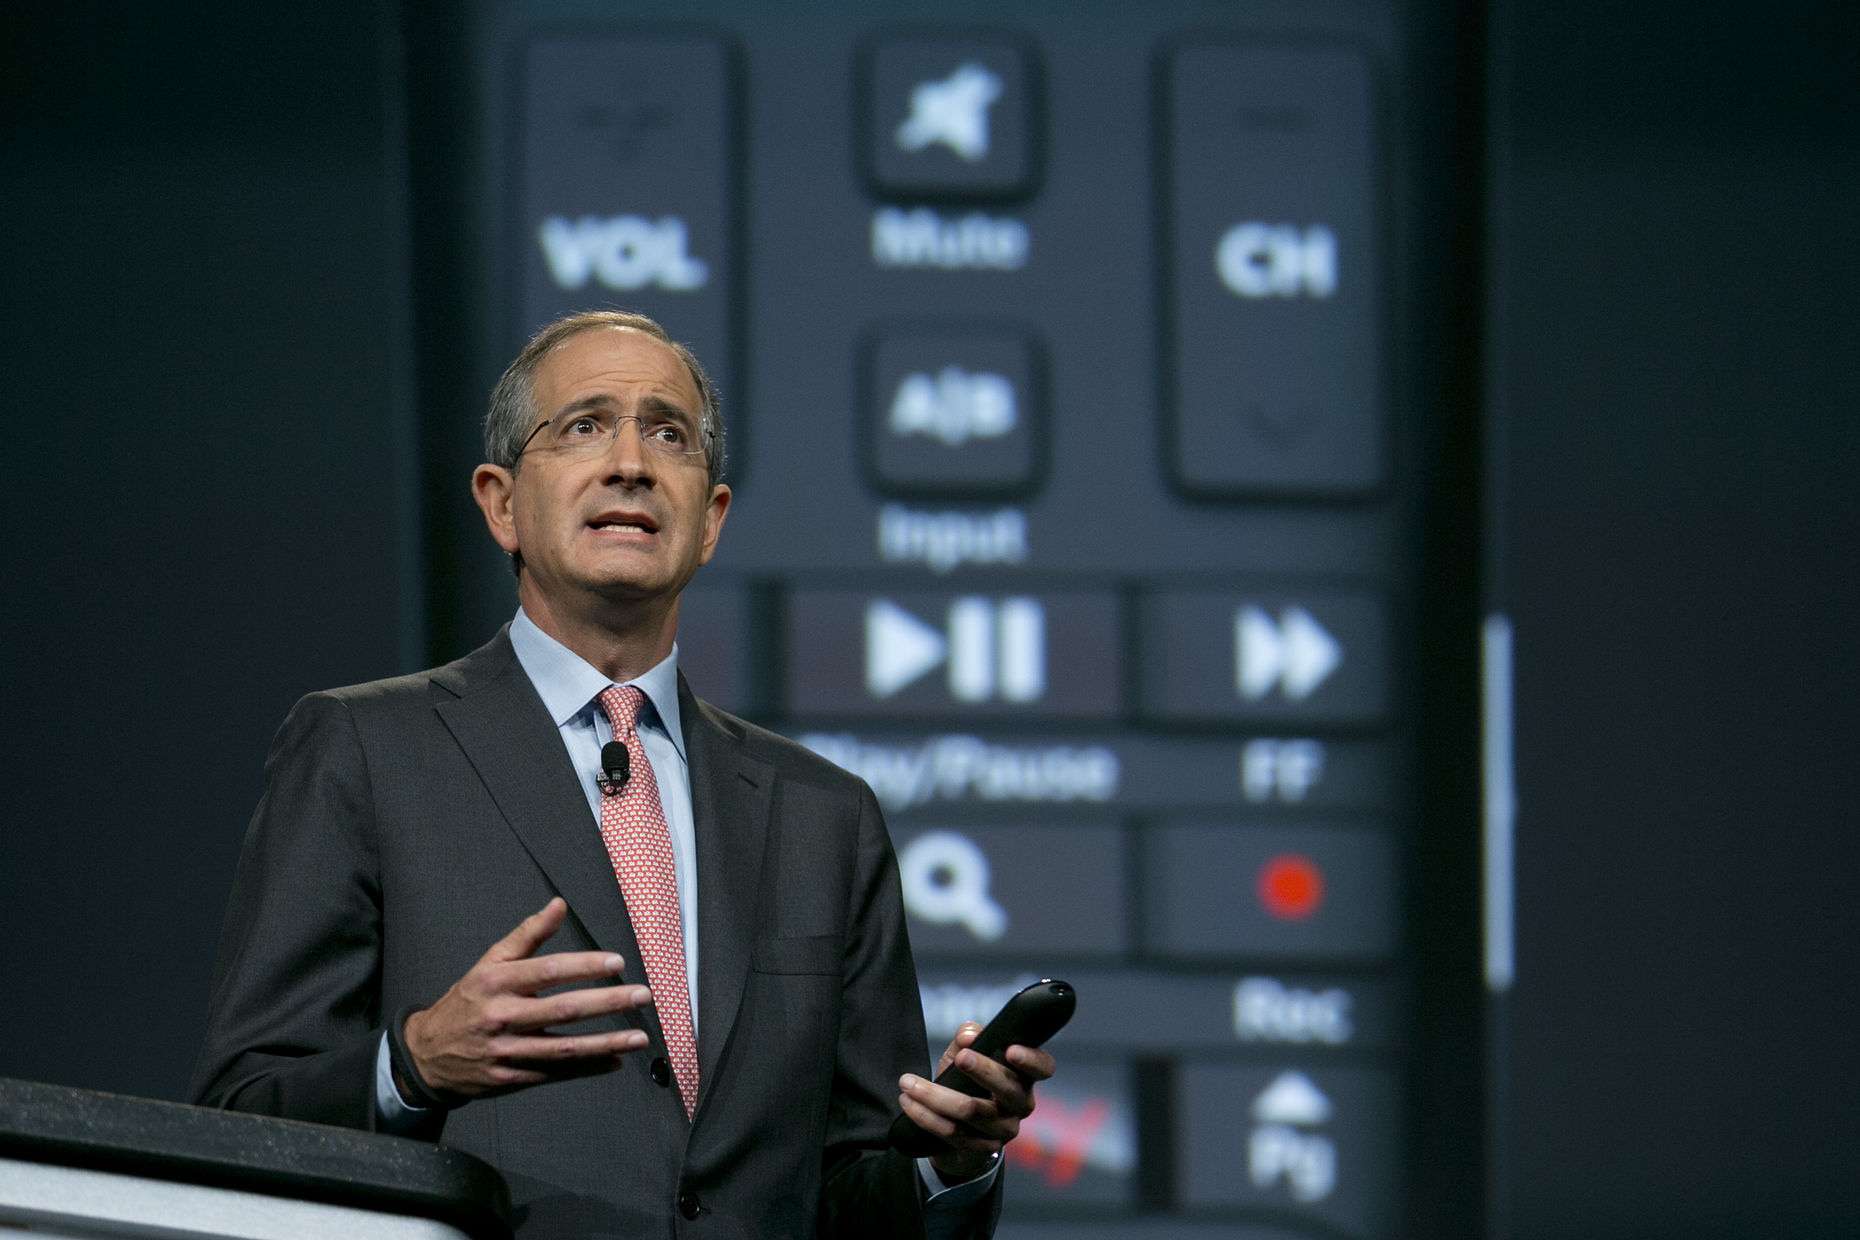 Comcast CEO Brian Roberts. Photo by Bloomberg.